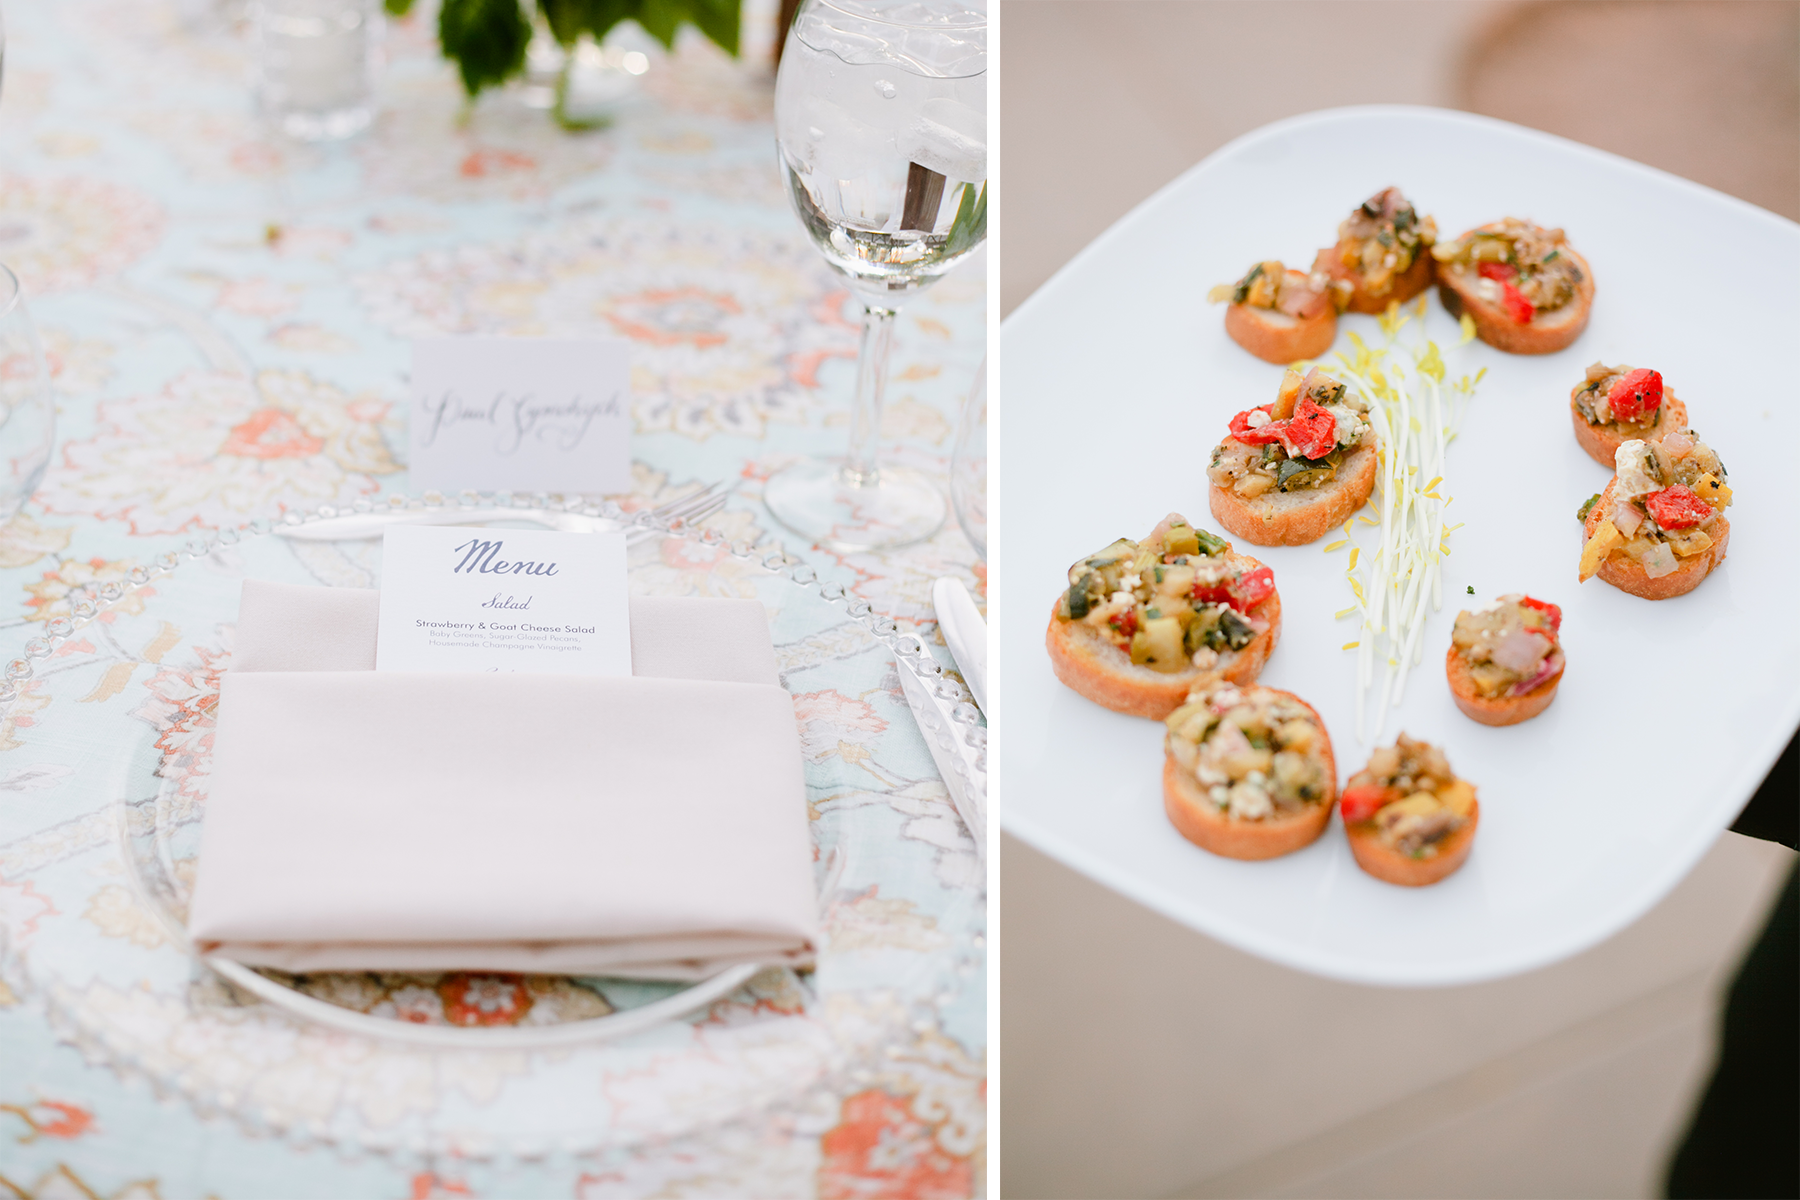 Anthony_And_Stork_Events_La-Tavola-Harper-Linen